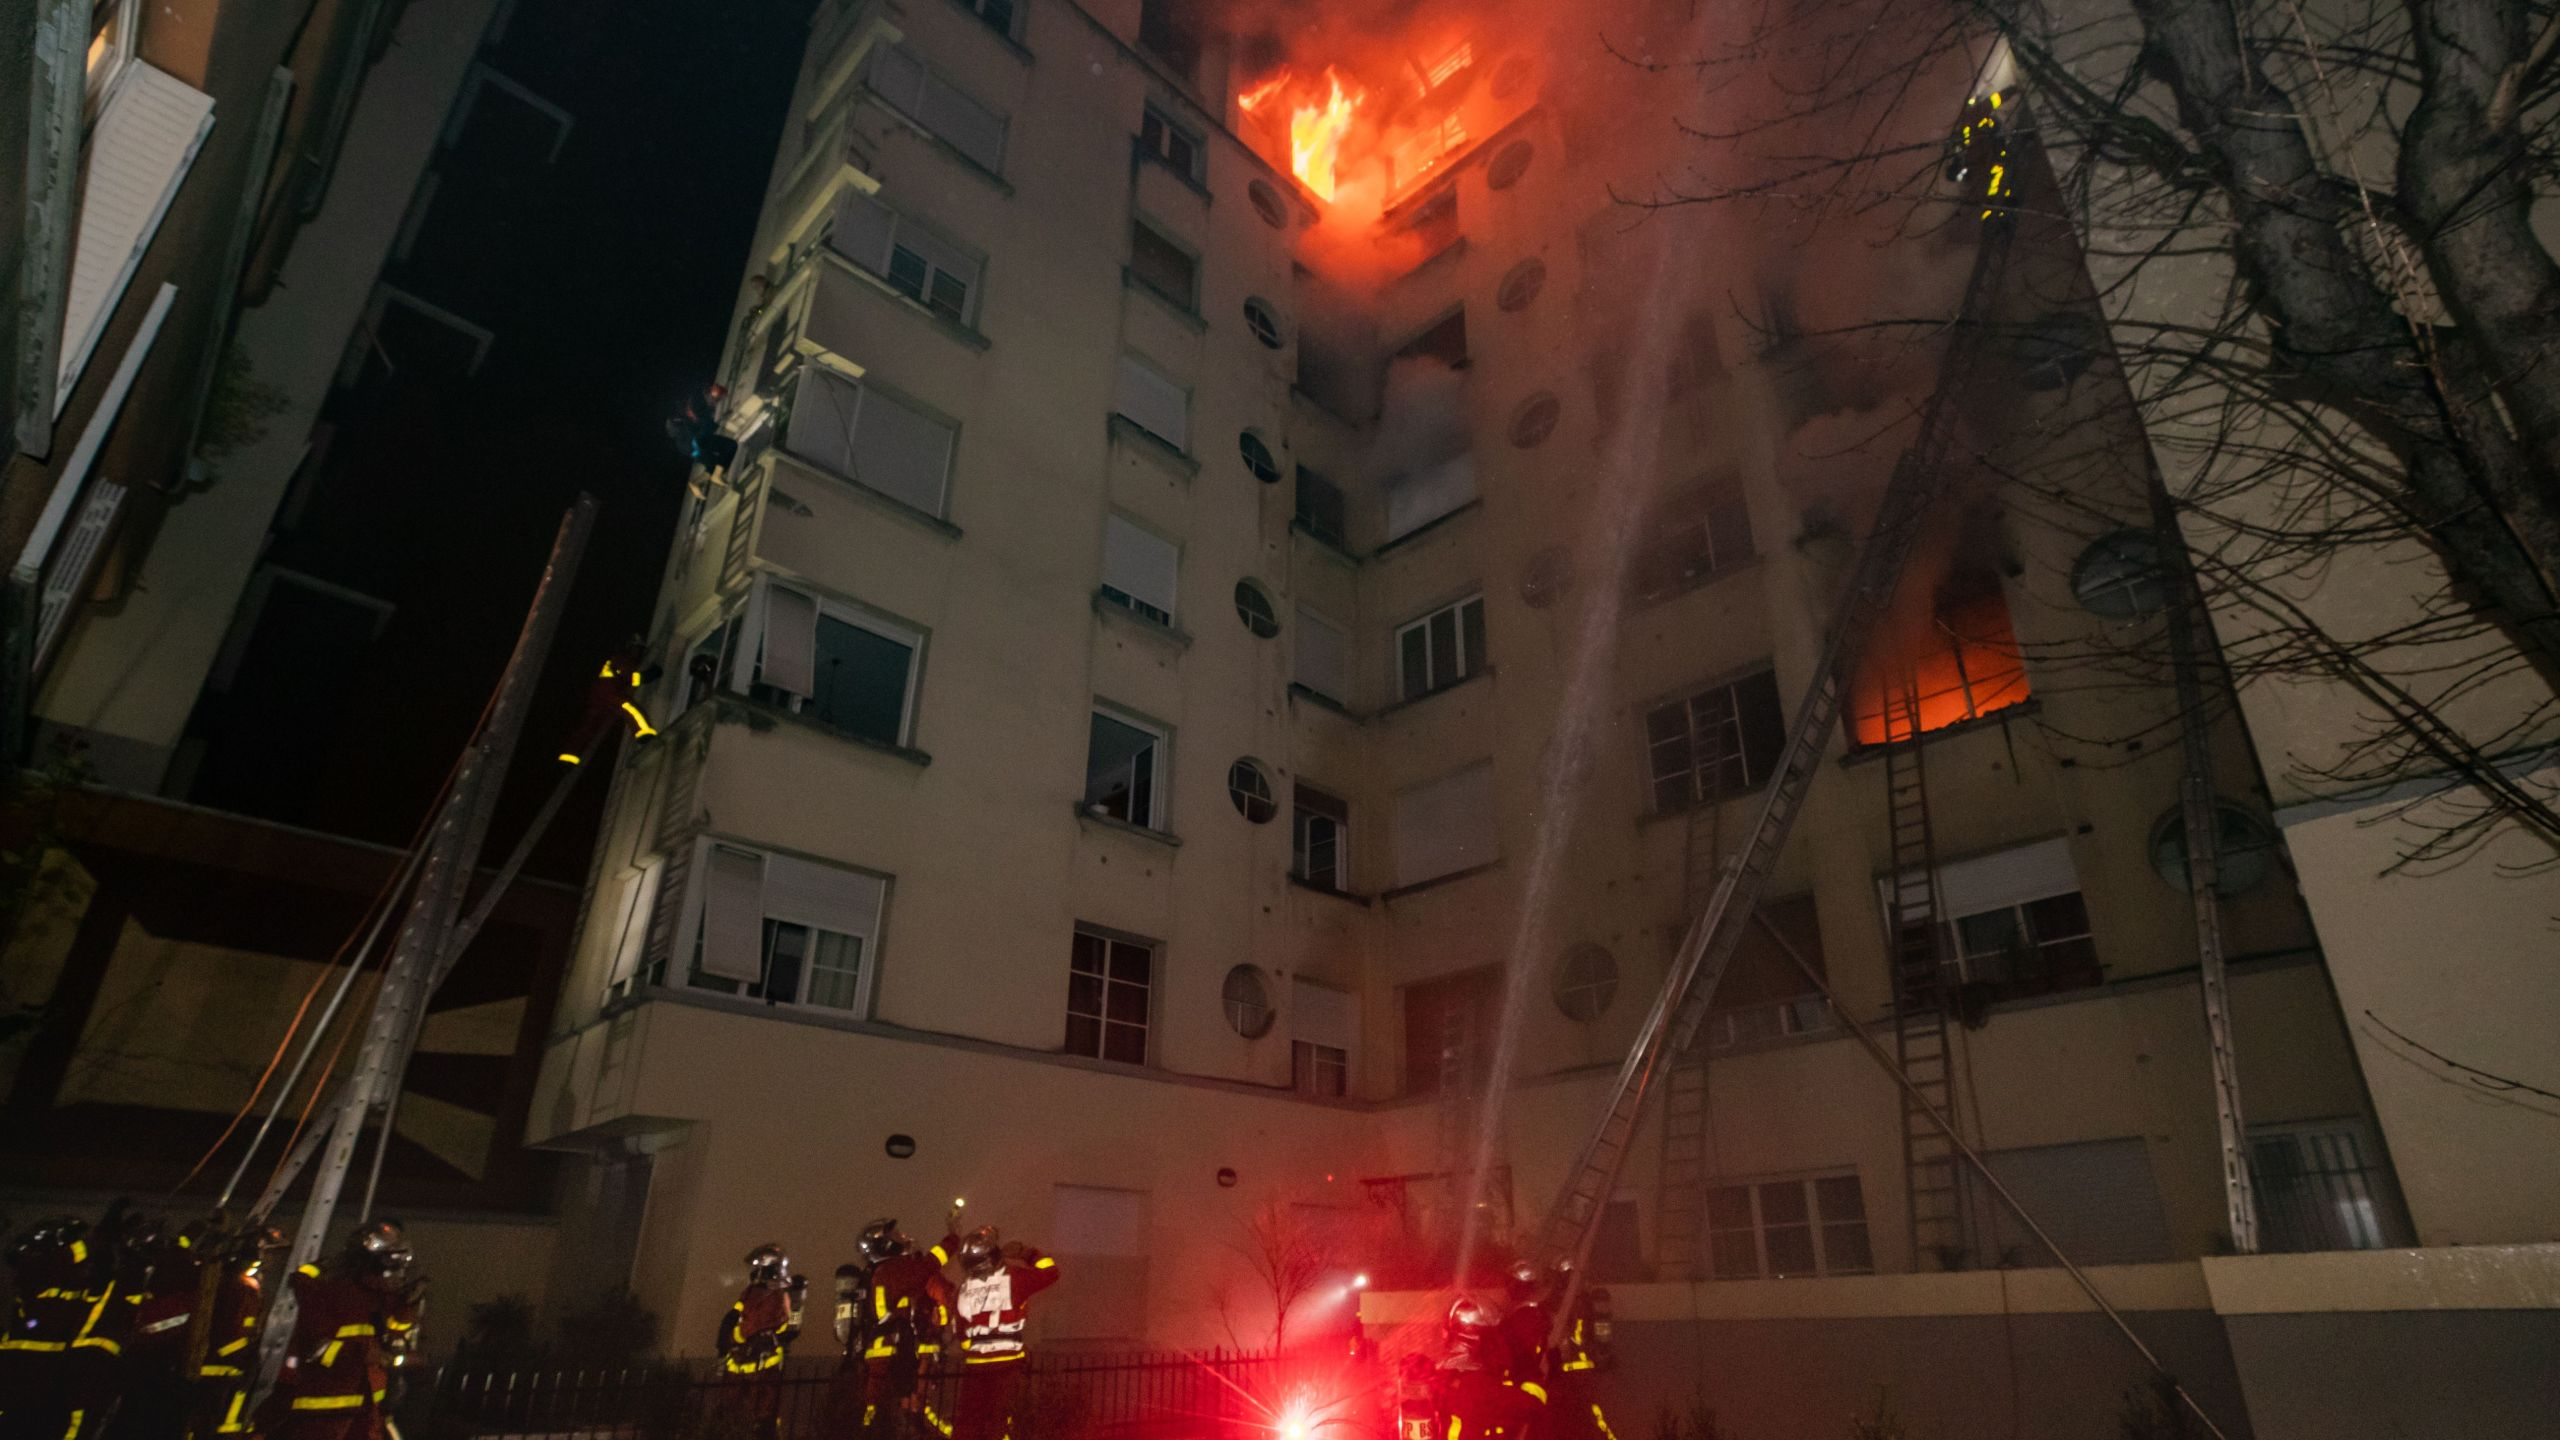 This handout picture taken and released by the Paris firefighters brigade (BSPP) in the night of February 5, 2019 shows firemen spraying water as a fire burns in a building in Erlanger street in the 16th arrondissement in Paris. (Credit: BENOIT MOSER/AFP/Getty Images)